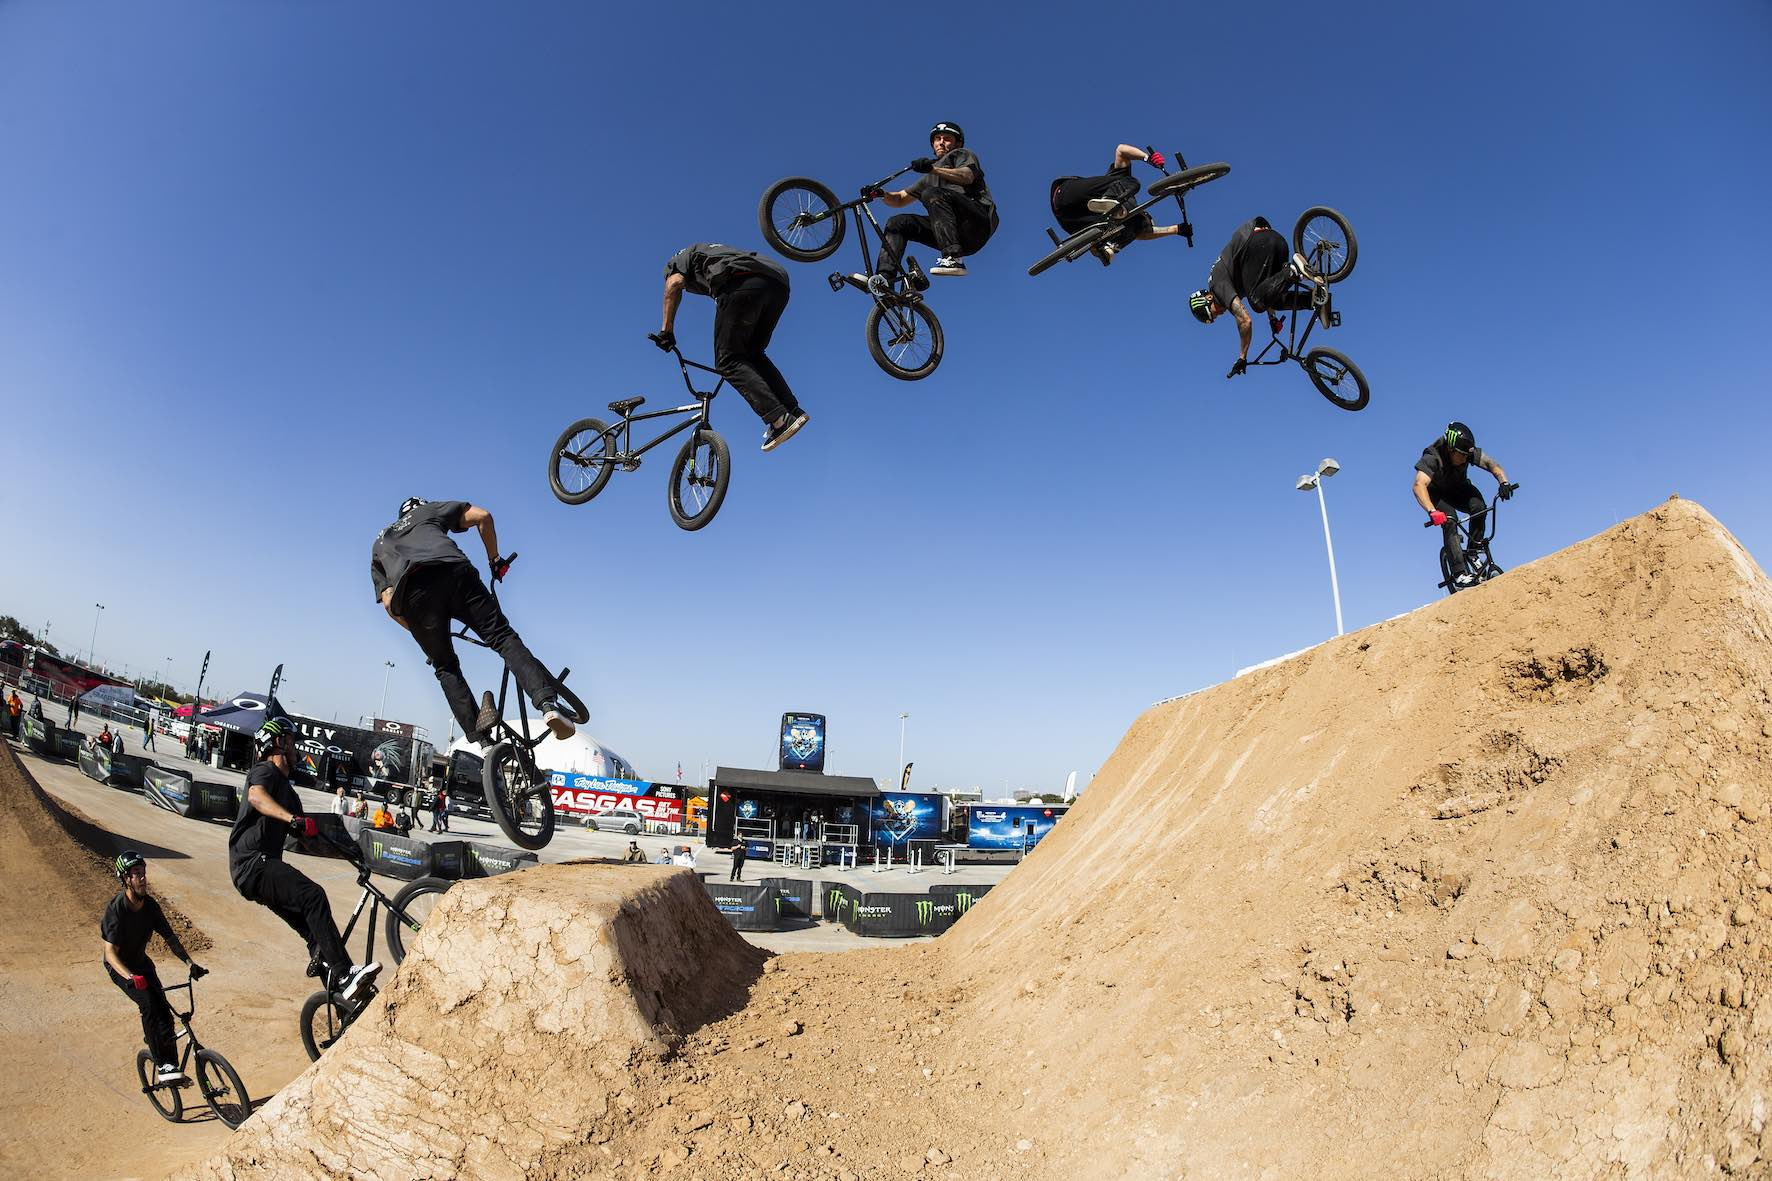 Pat Casey riding in the Monster Energy BMX Triple Challenge Dirt Competition